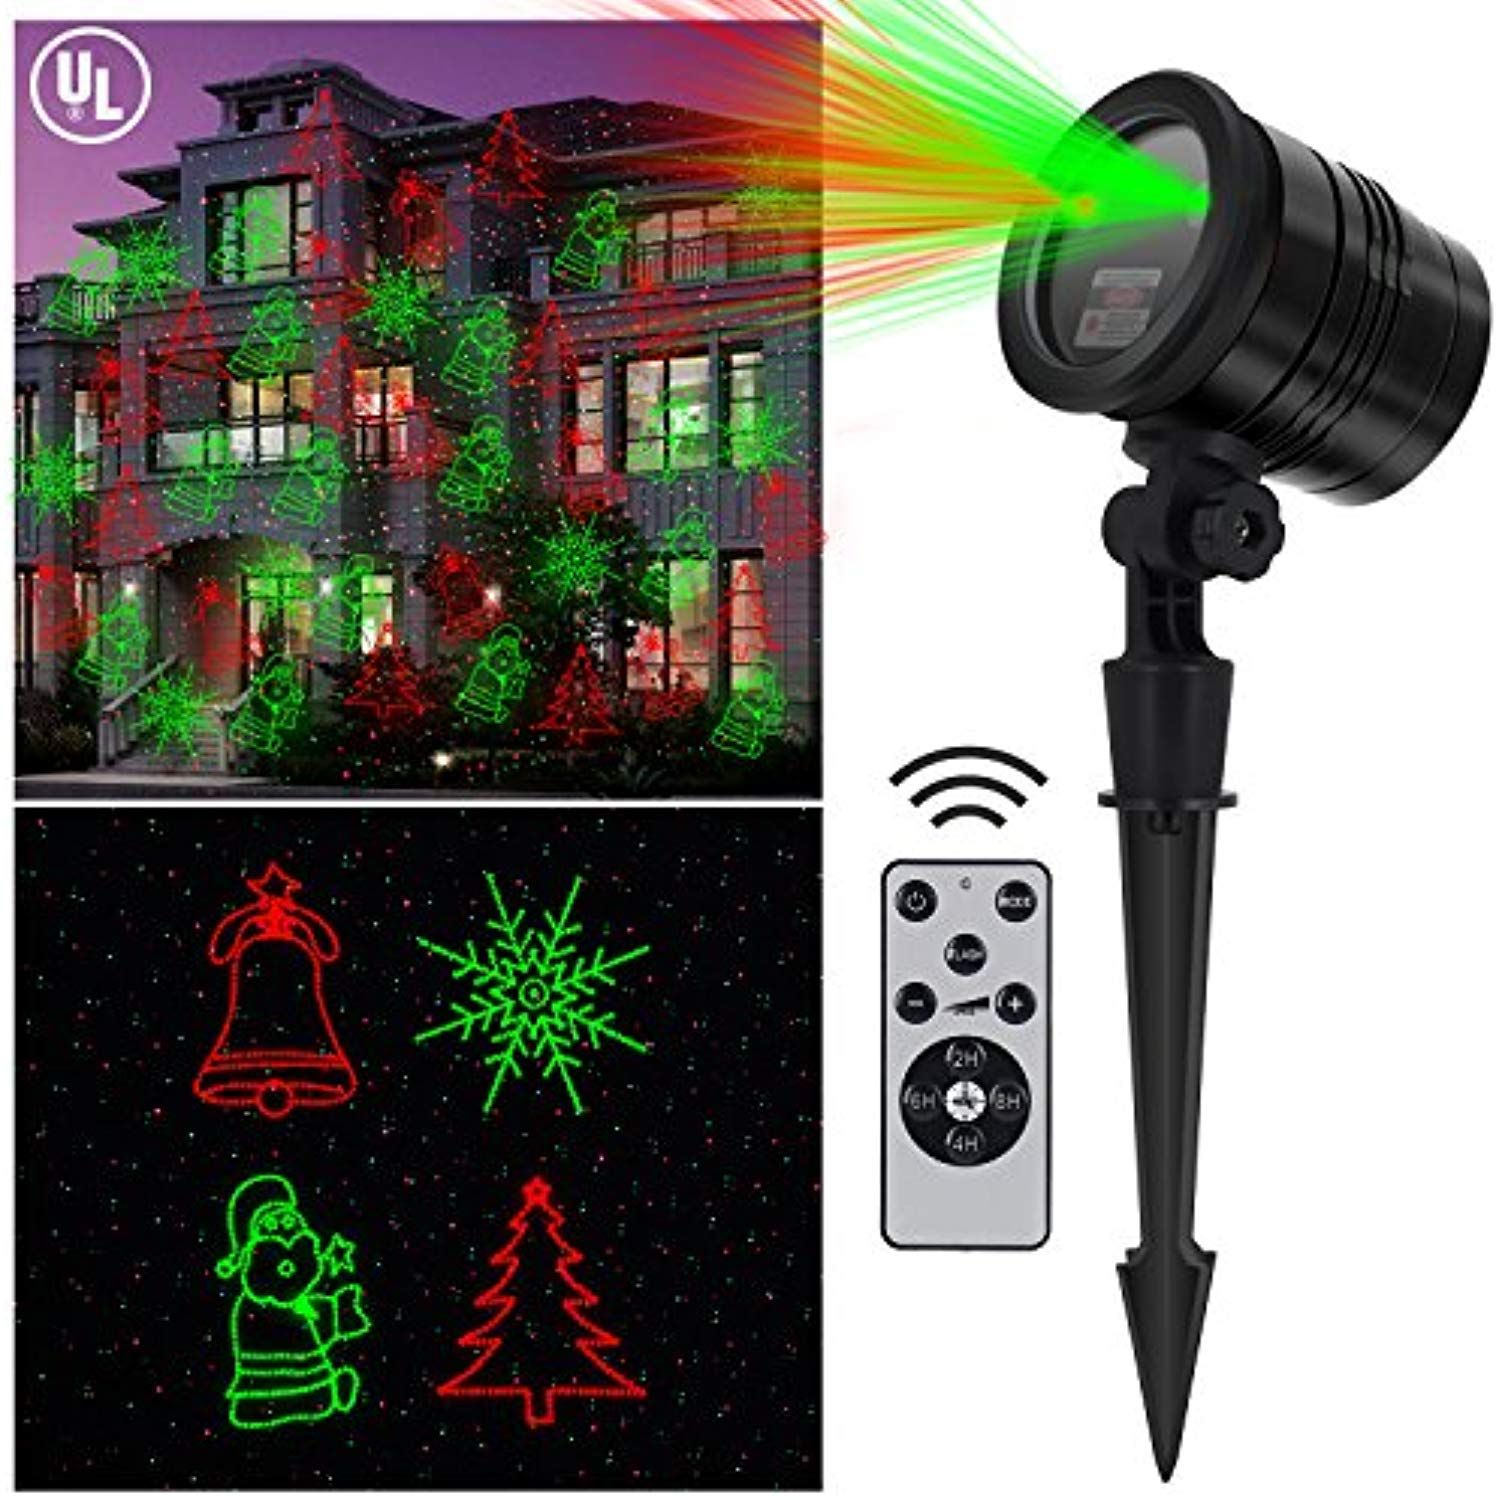 Christmas Outdoor Laser Light Aluminum Alloy With Rf Wireless Controller Ip 65 Waterproof Red And Green Stars Lig Outdoor Christmas Laser Lights Light Show